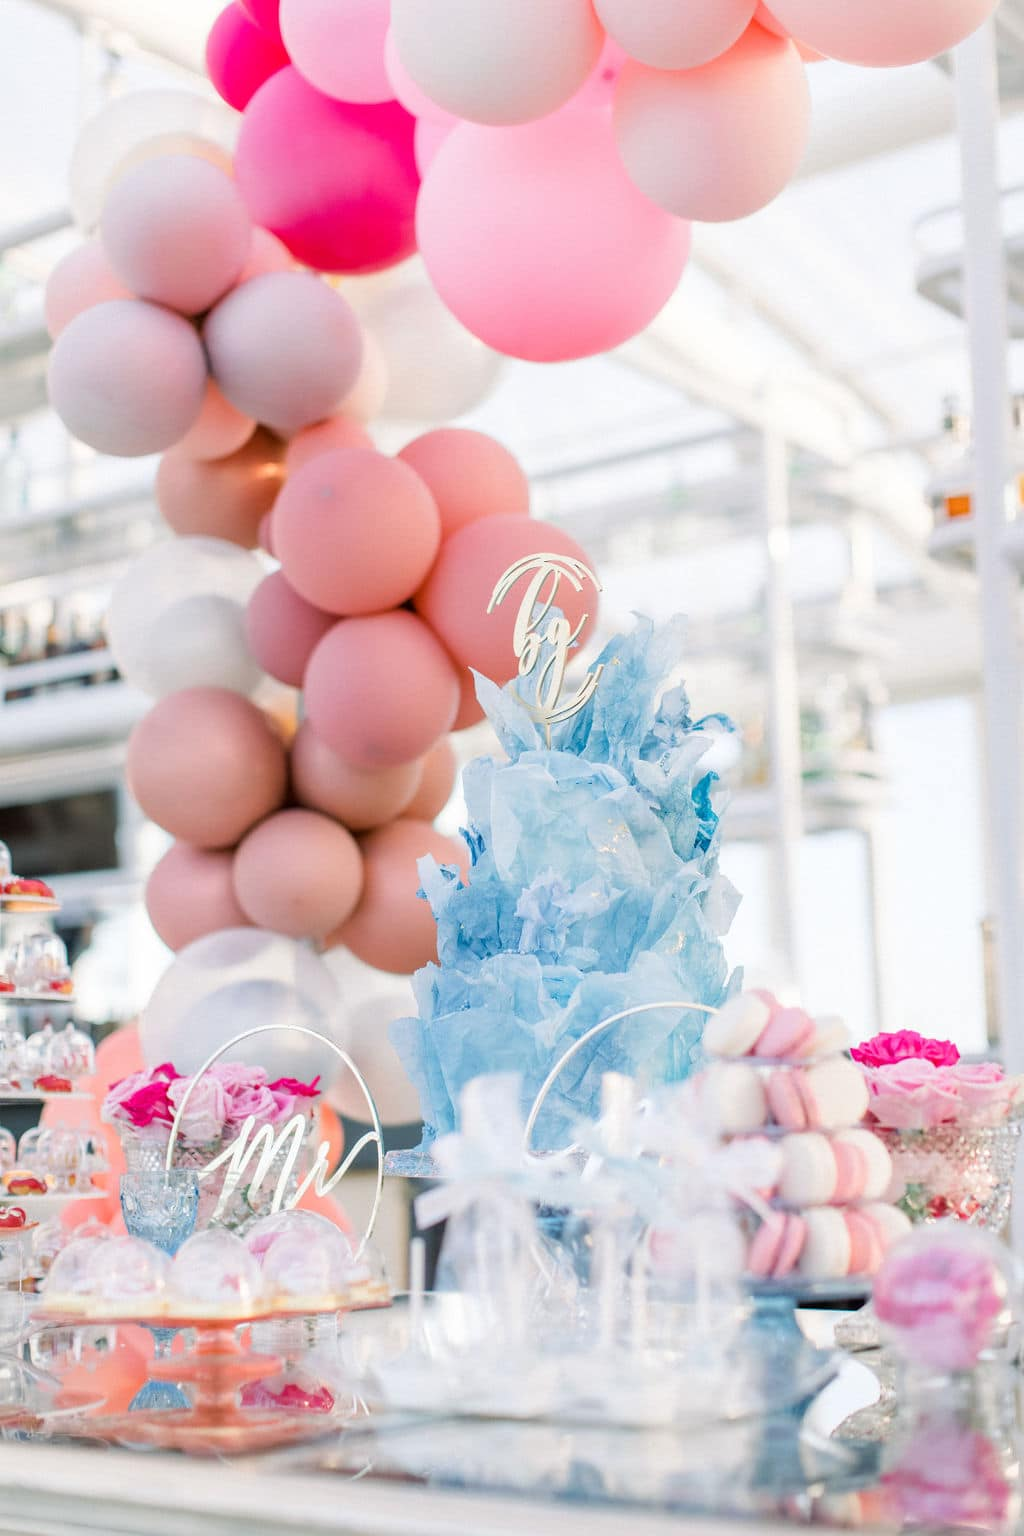 blue floral wedding cake surrounded by pink wedding balloons